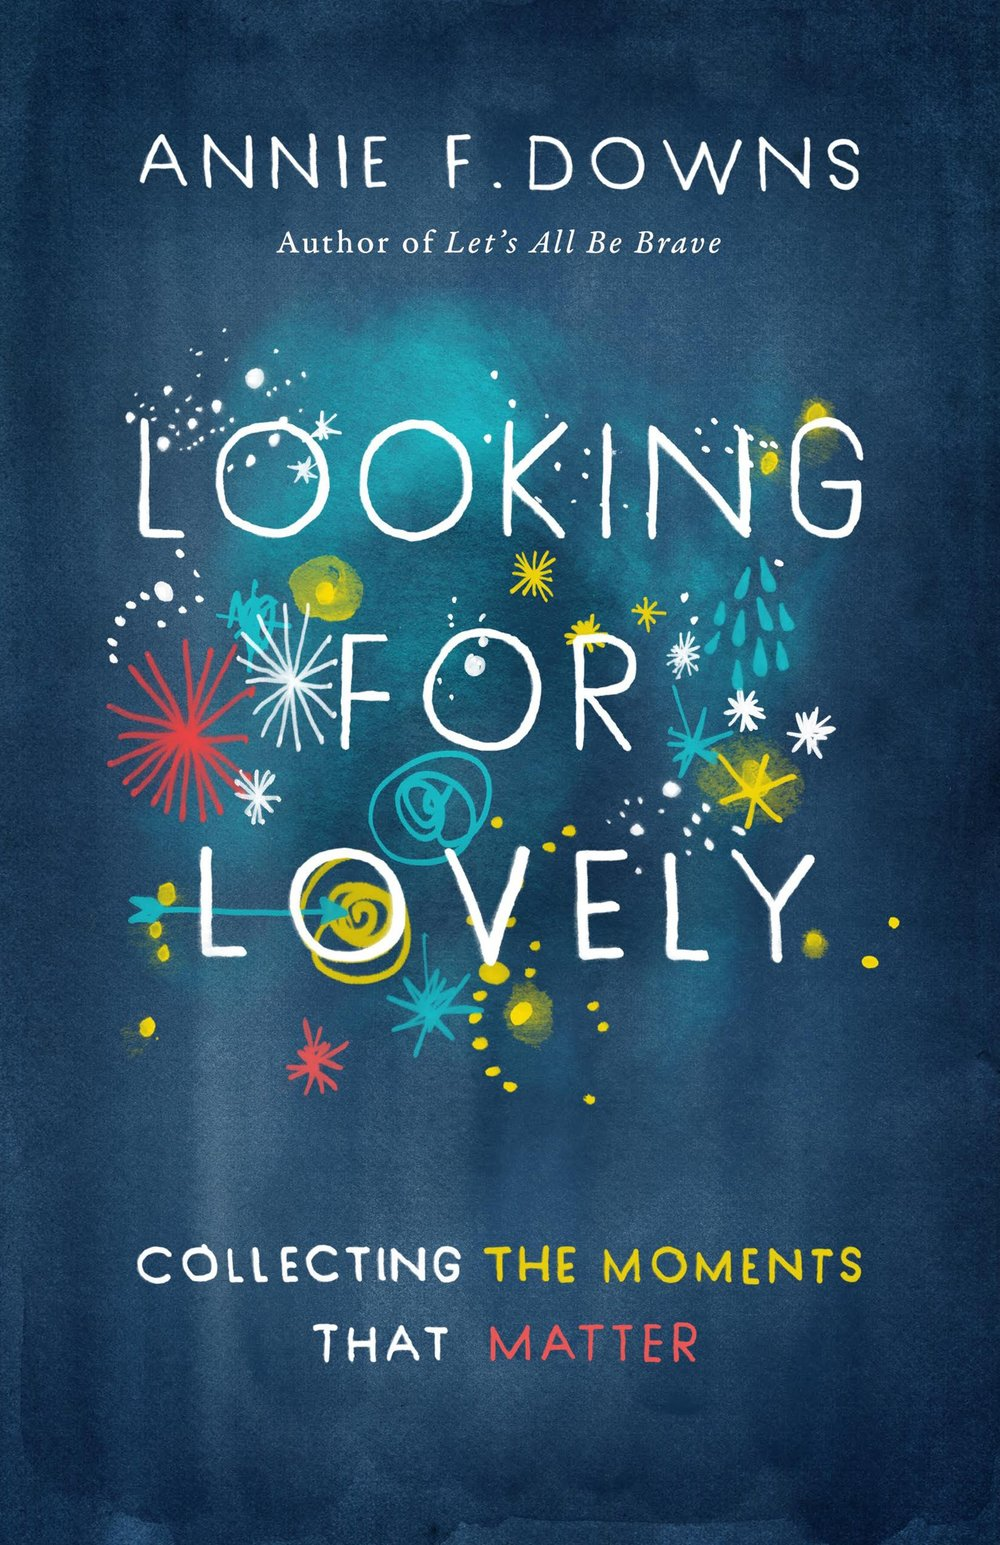 Annie Downs New book - LOOKING FOR LOVELY